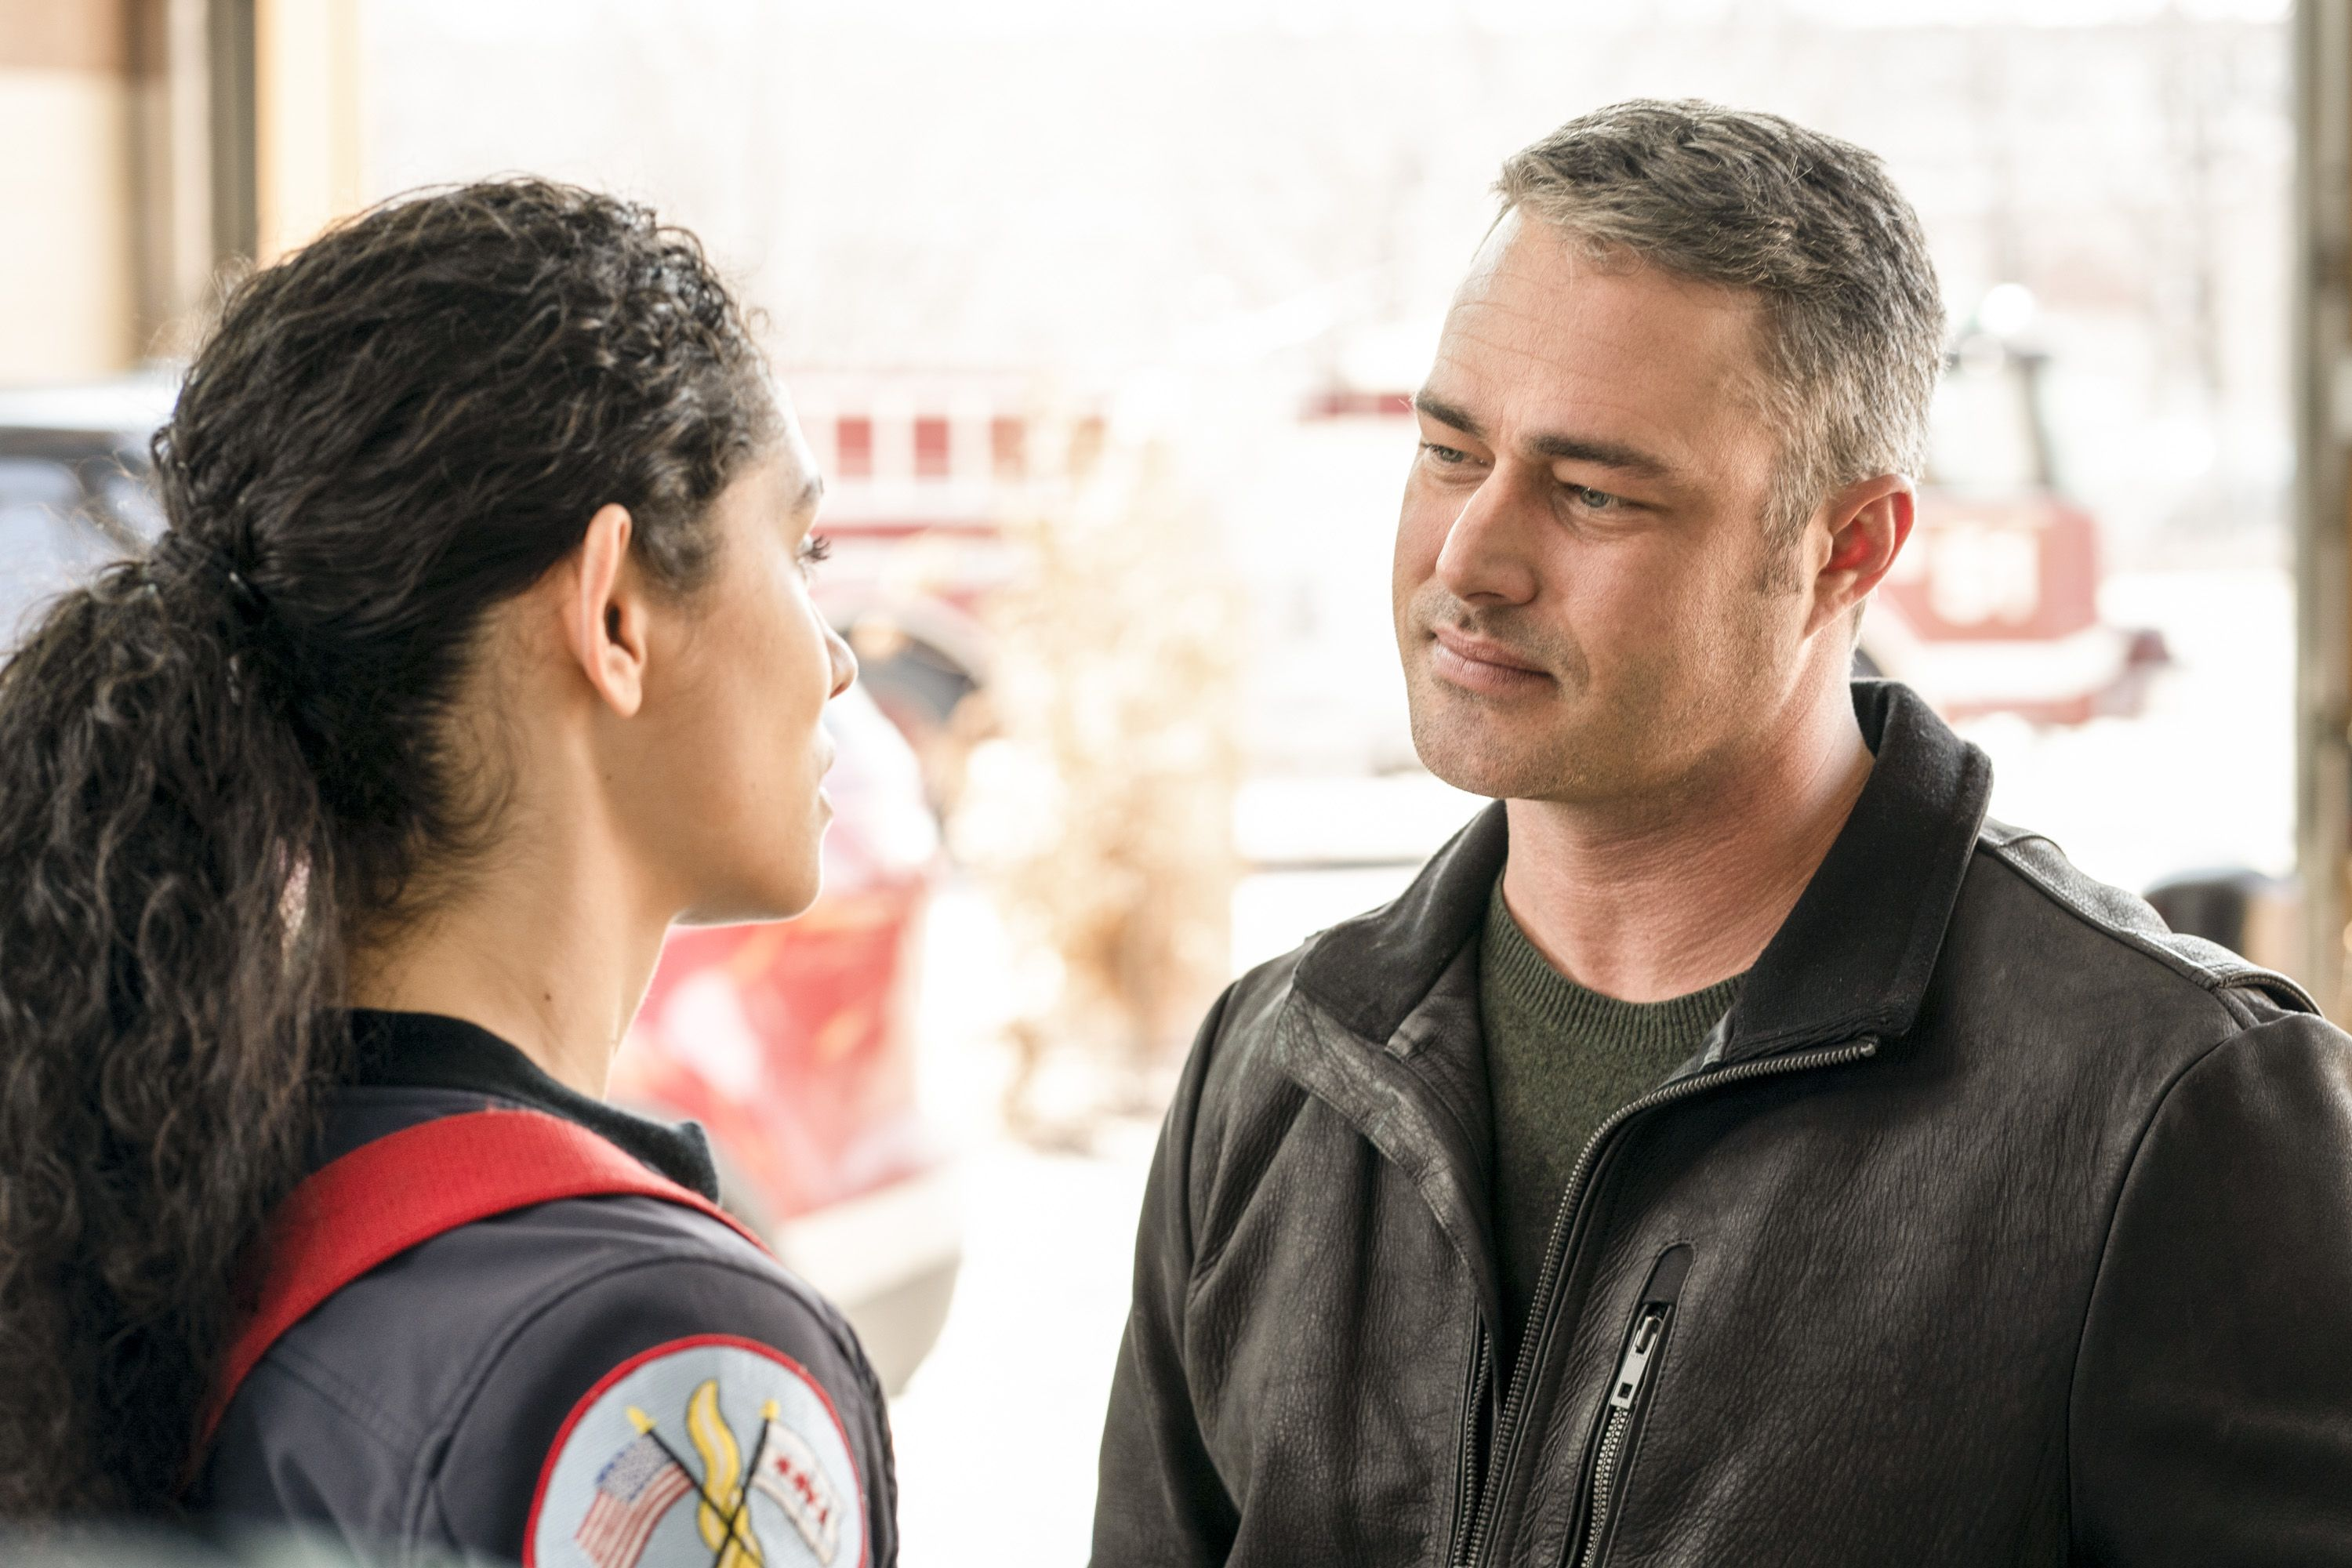 Chicago Fire Season 8 - Cast, Release Date, Spoilers, and